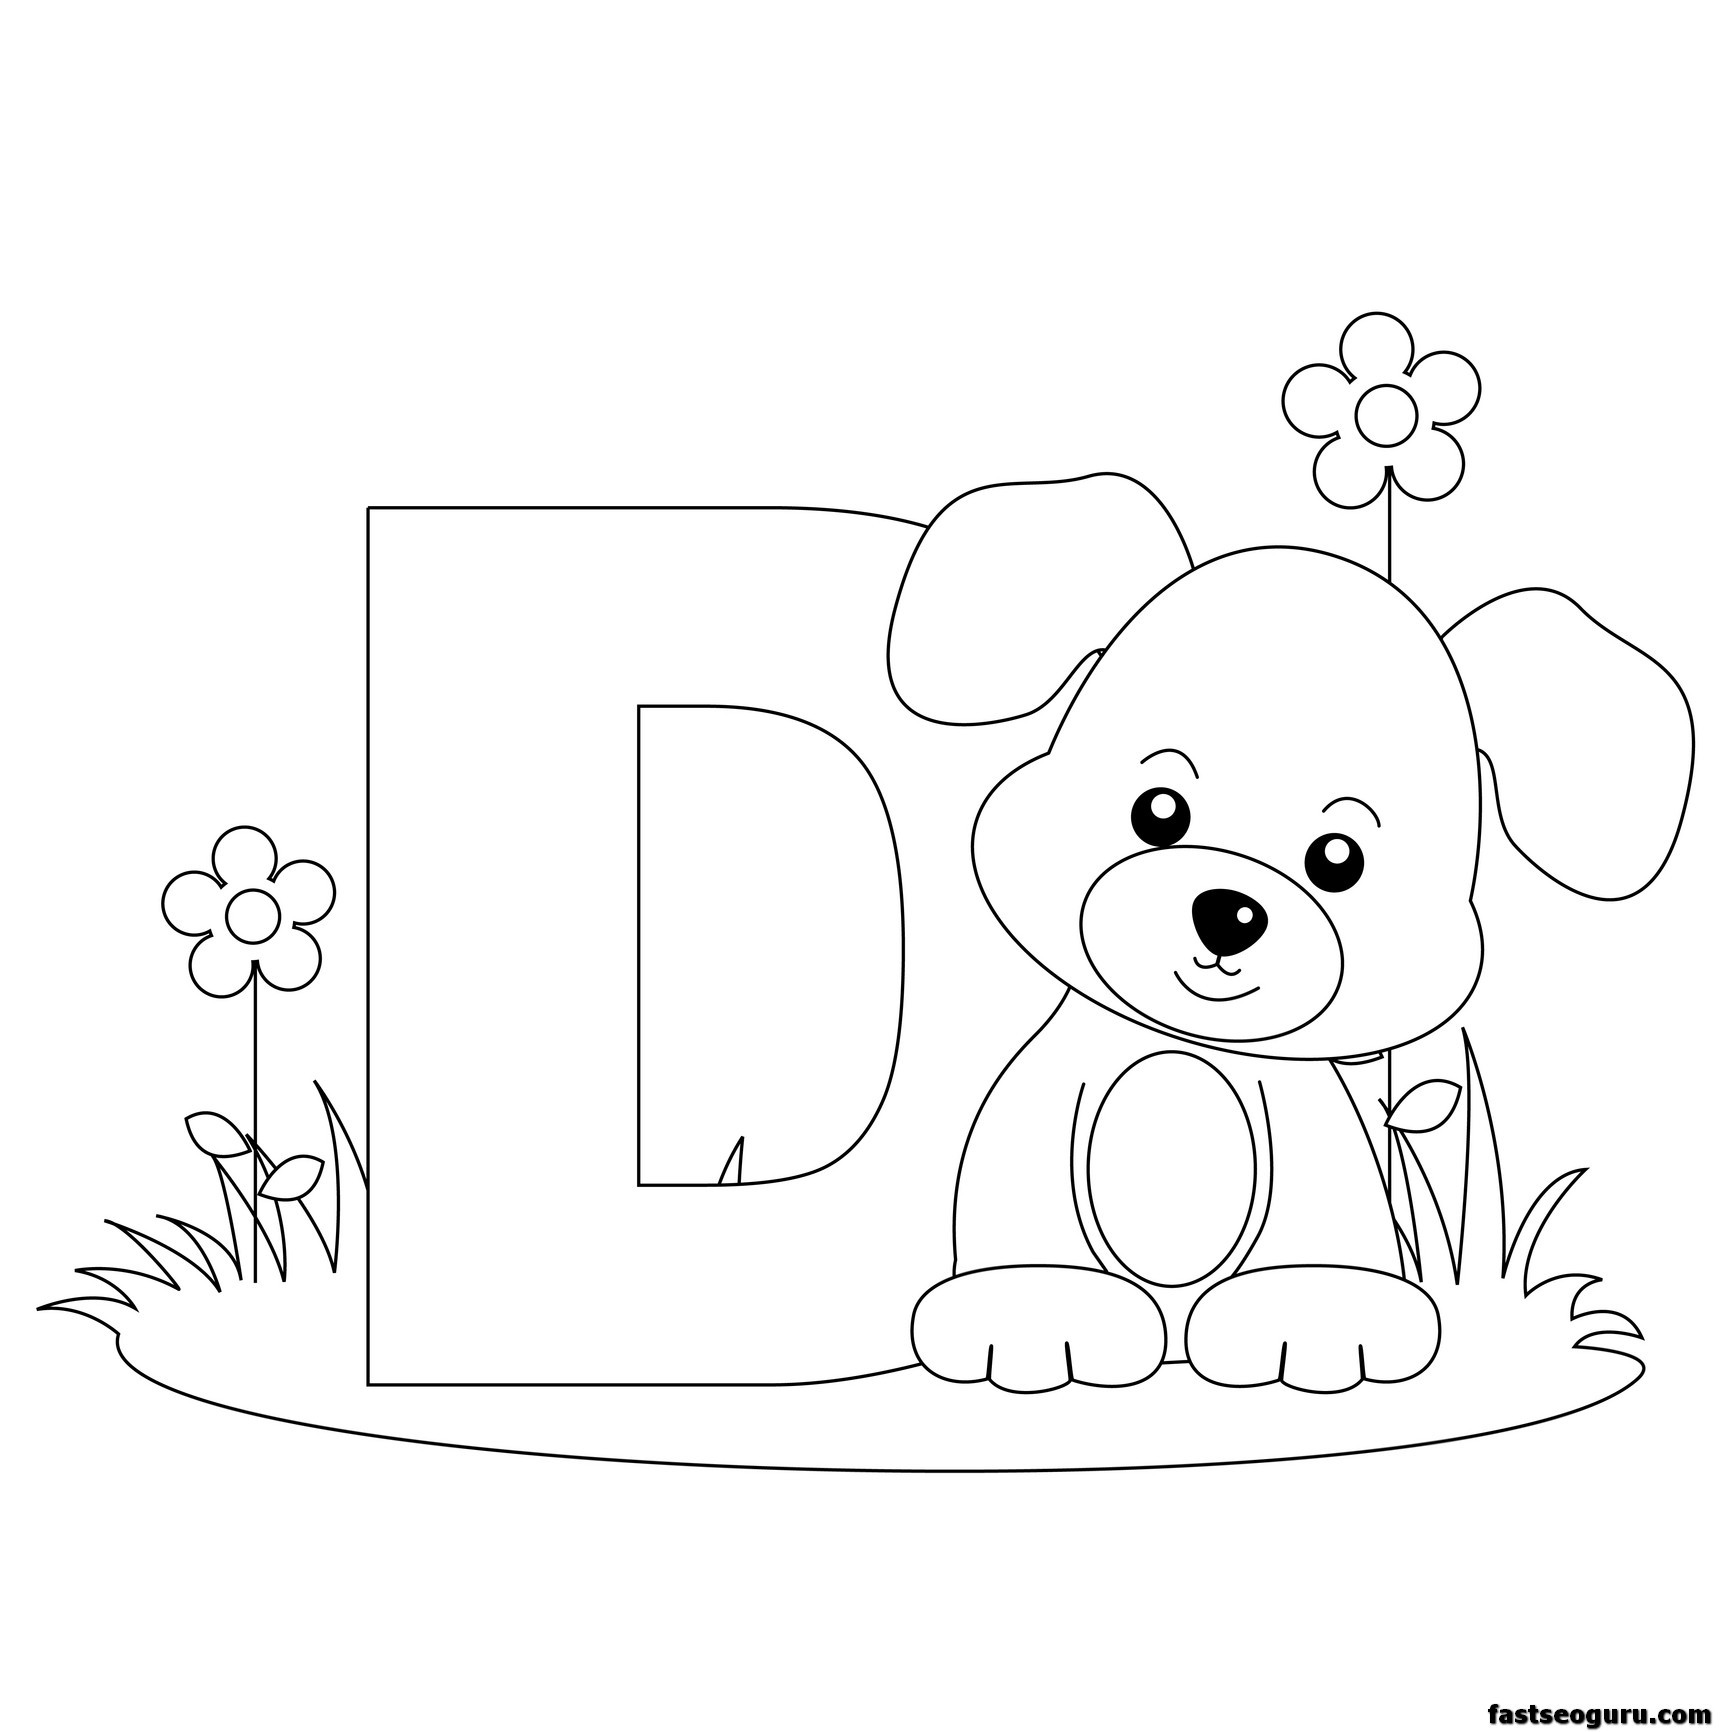 printable animal alphabet worksheets letter d for dog printable coloring pages for kids